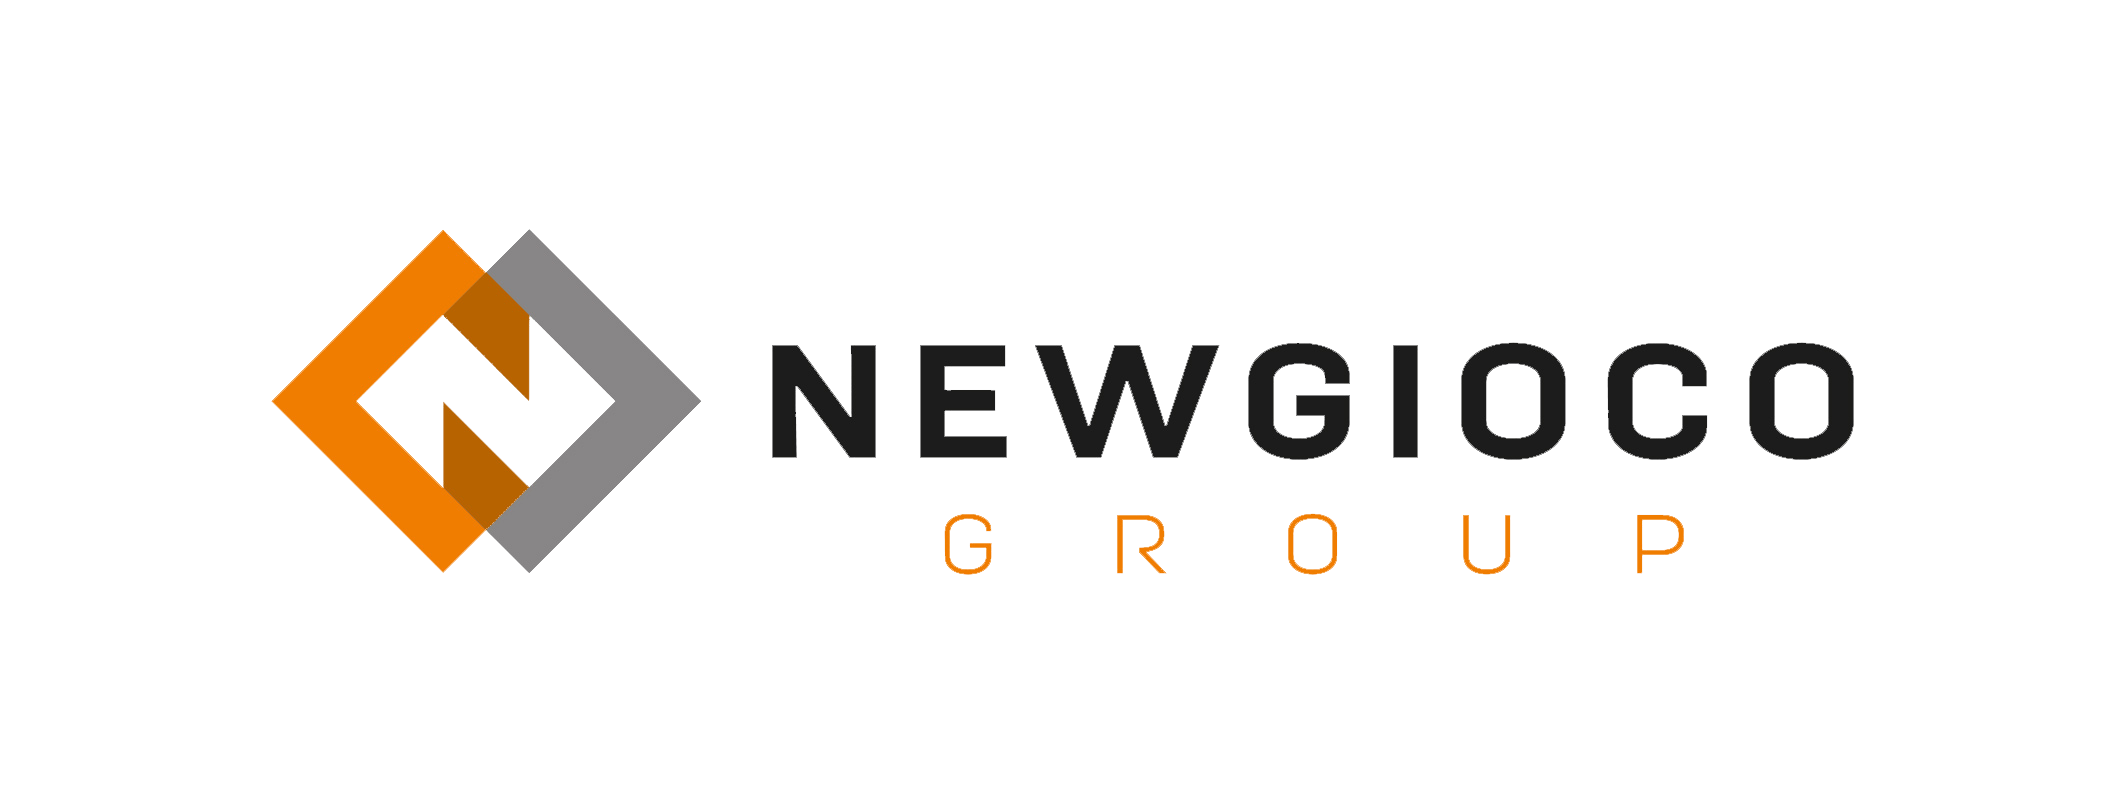 Newgioco Group, Inc.